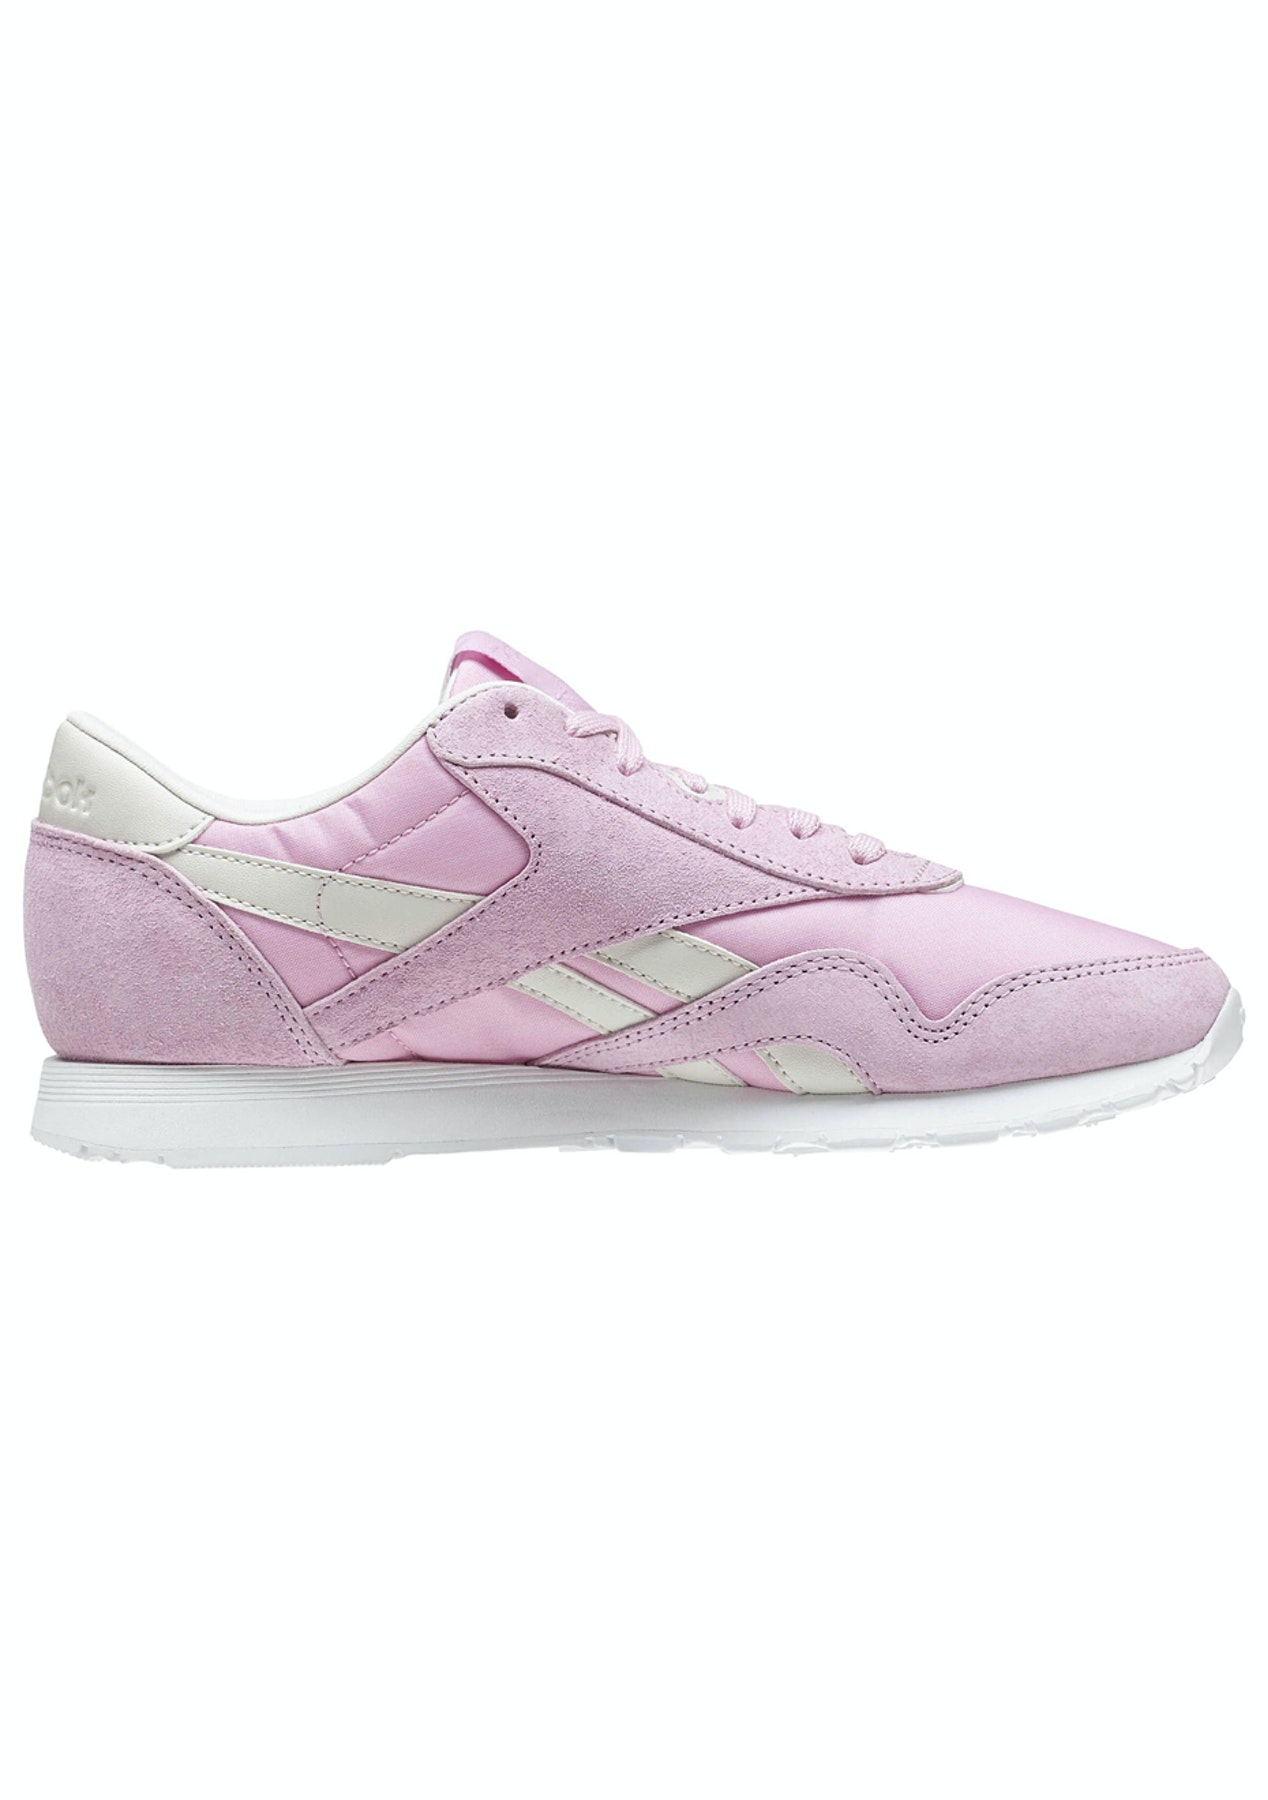 37a72004470 Reebok Womens - Cl Nylon X Face - Vision Kindness - Big Brand Womens Shoes  - Onceit